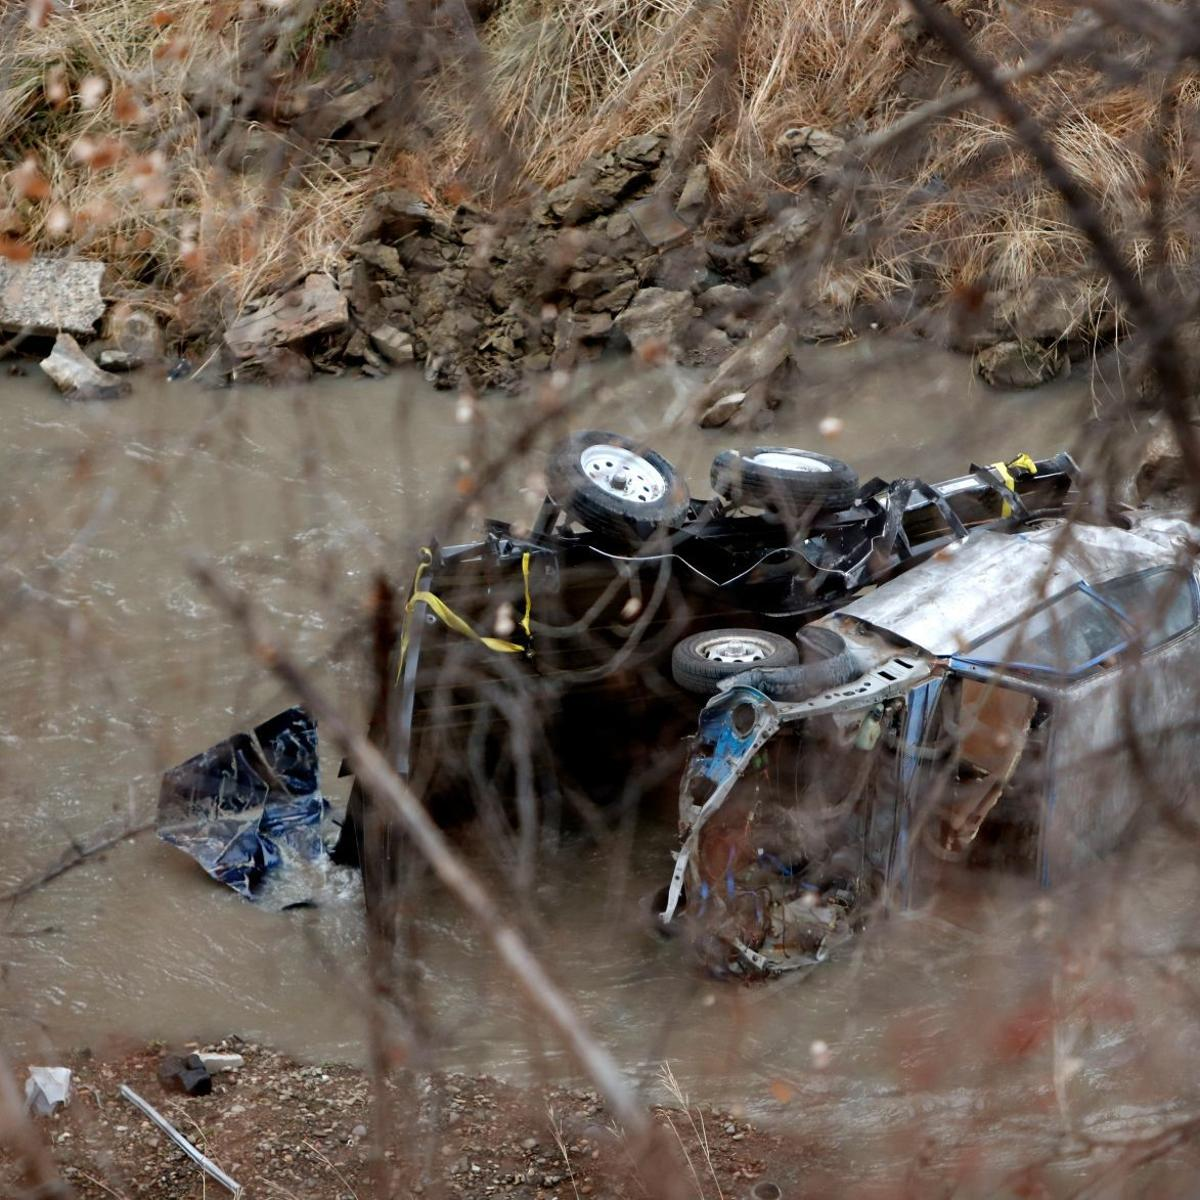 Montana Highway Patrol continues to investigate crash that killed